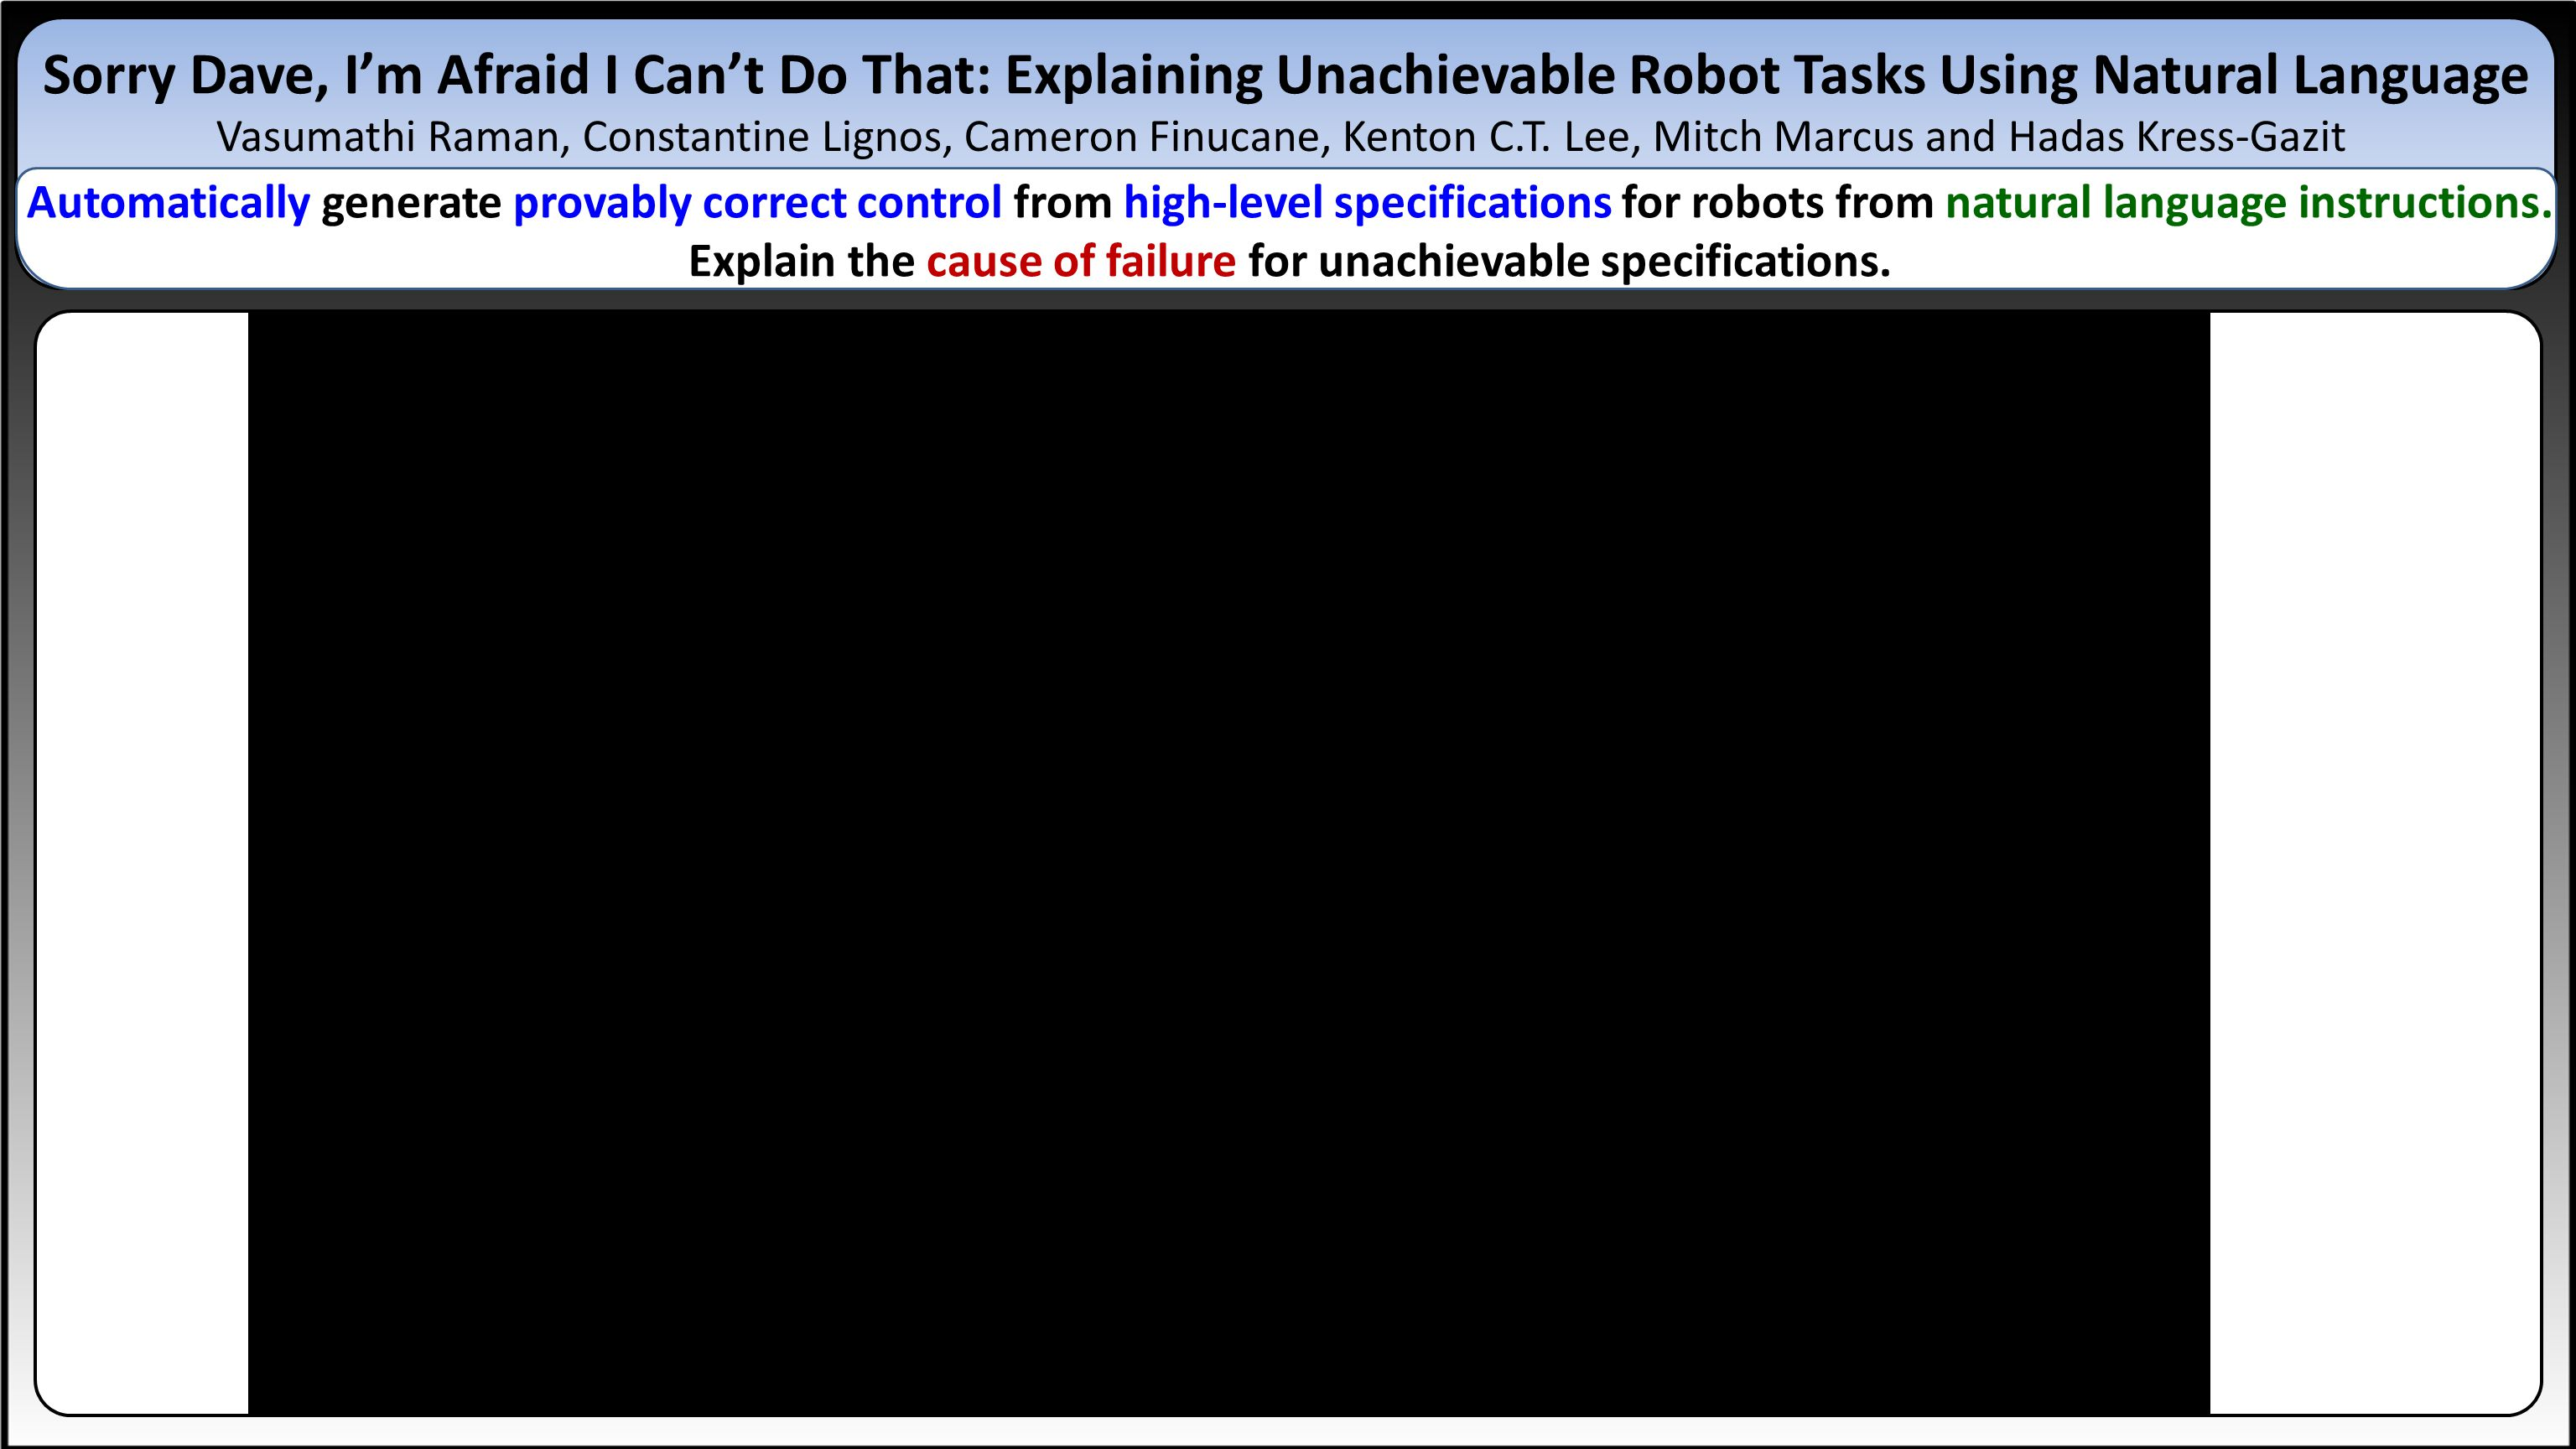 Sorry Dave, I'm Afraid I Can't Do That: Explaining Unachievable Robot Tasks Using Natural Language Vasumathi Raman, Constantine Lignos, Cameron Finucane, Kenton C.T.